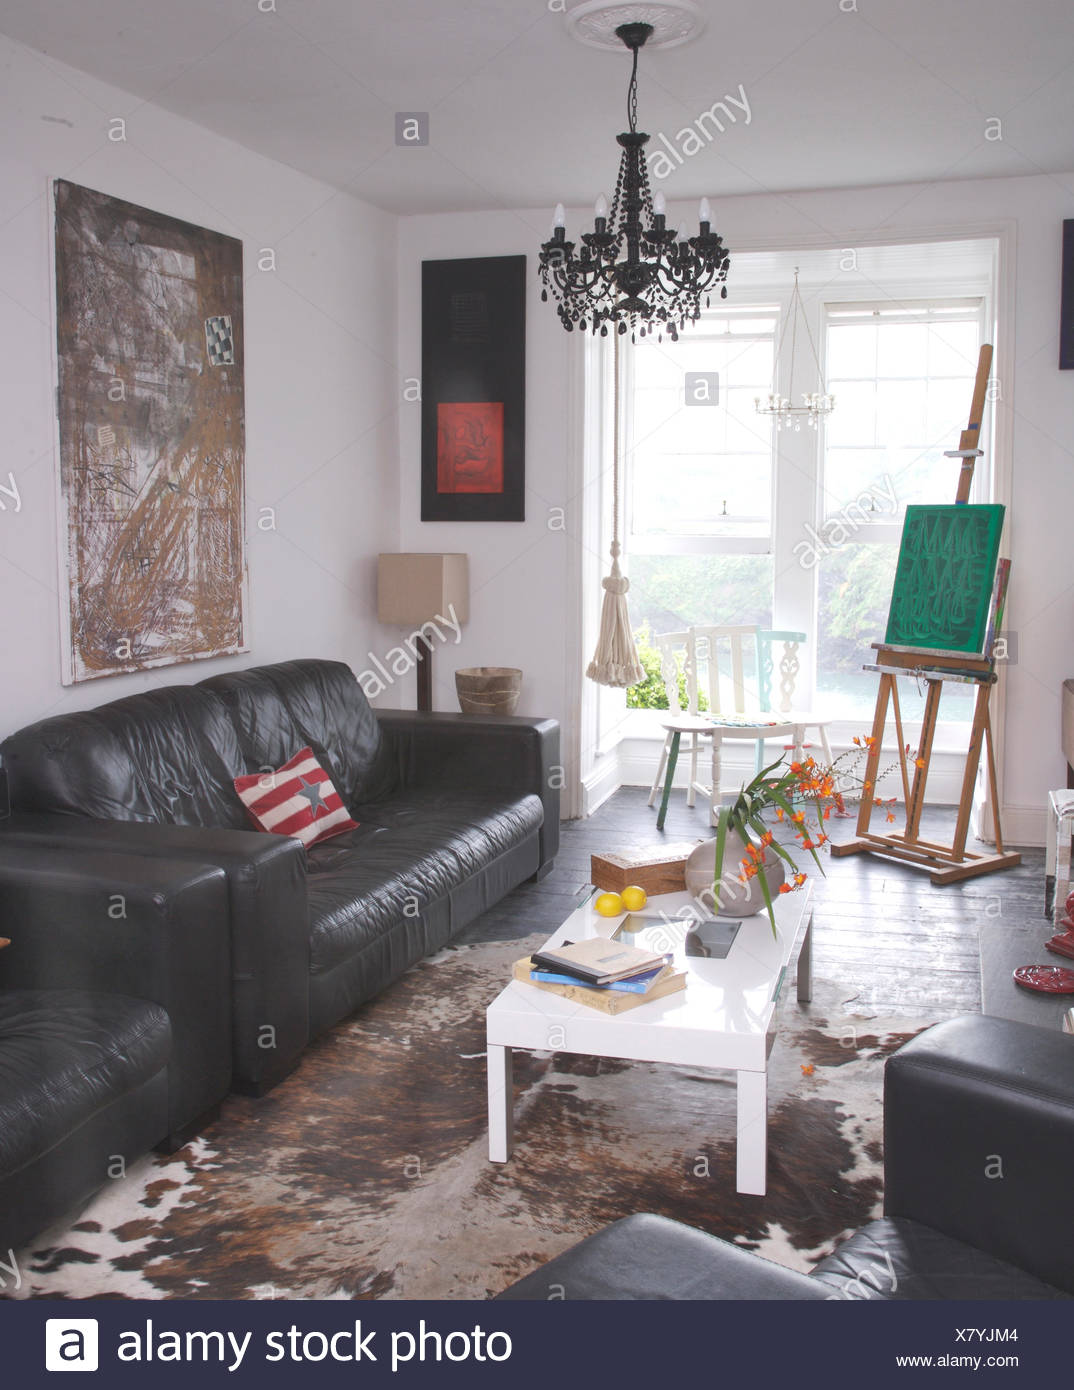 Black Leather Sofas And A White Coffee Table In Artistu0027s Coastal Living  Room With A Vintage Cow Hide Rug On Floor